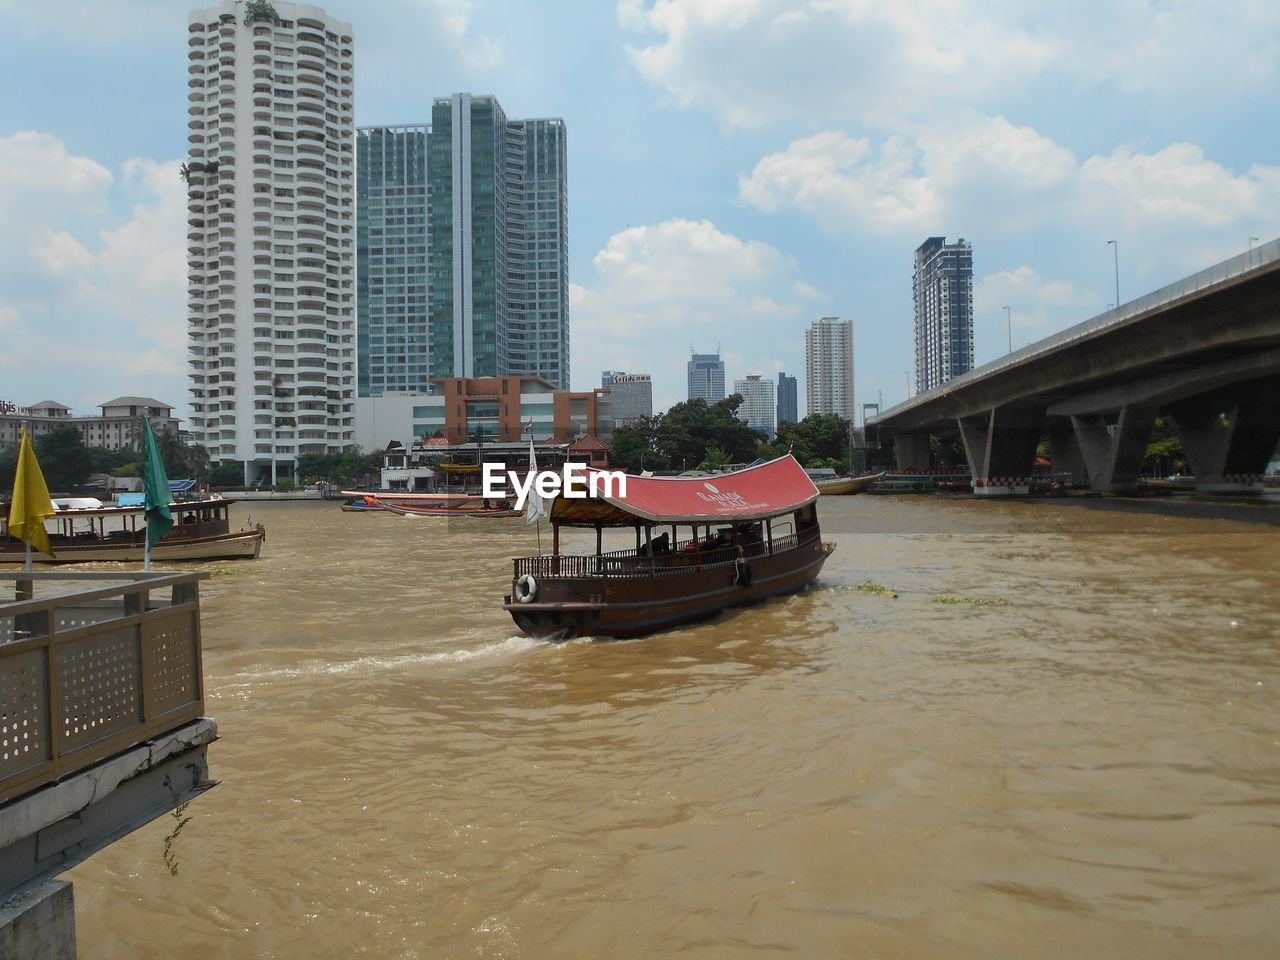 built structure, architecture, building exterior, city, transportation, water, sky, nautical vessel, mode of transportation, waterfront, building, cloud - sky, river, office building exterior, bridge, nature, skyscraper, day, connection, bridge - man made structure, tall - high, no people, outdoors, modern, cityscape, passenger craft